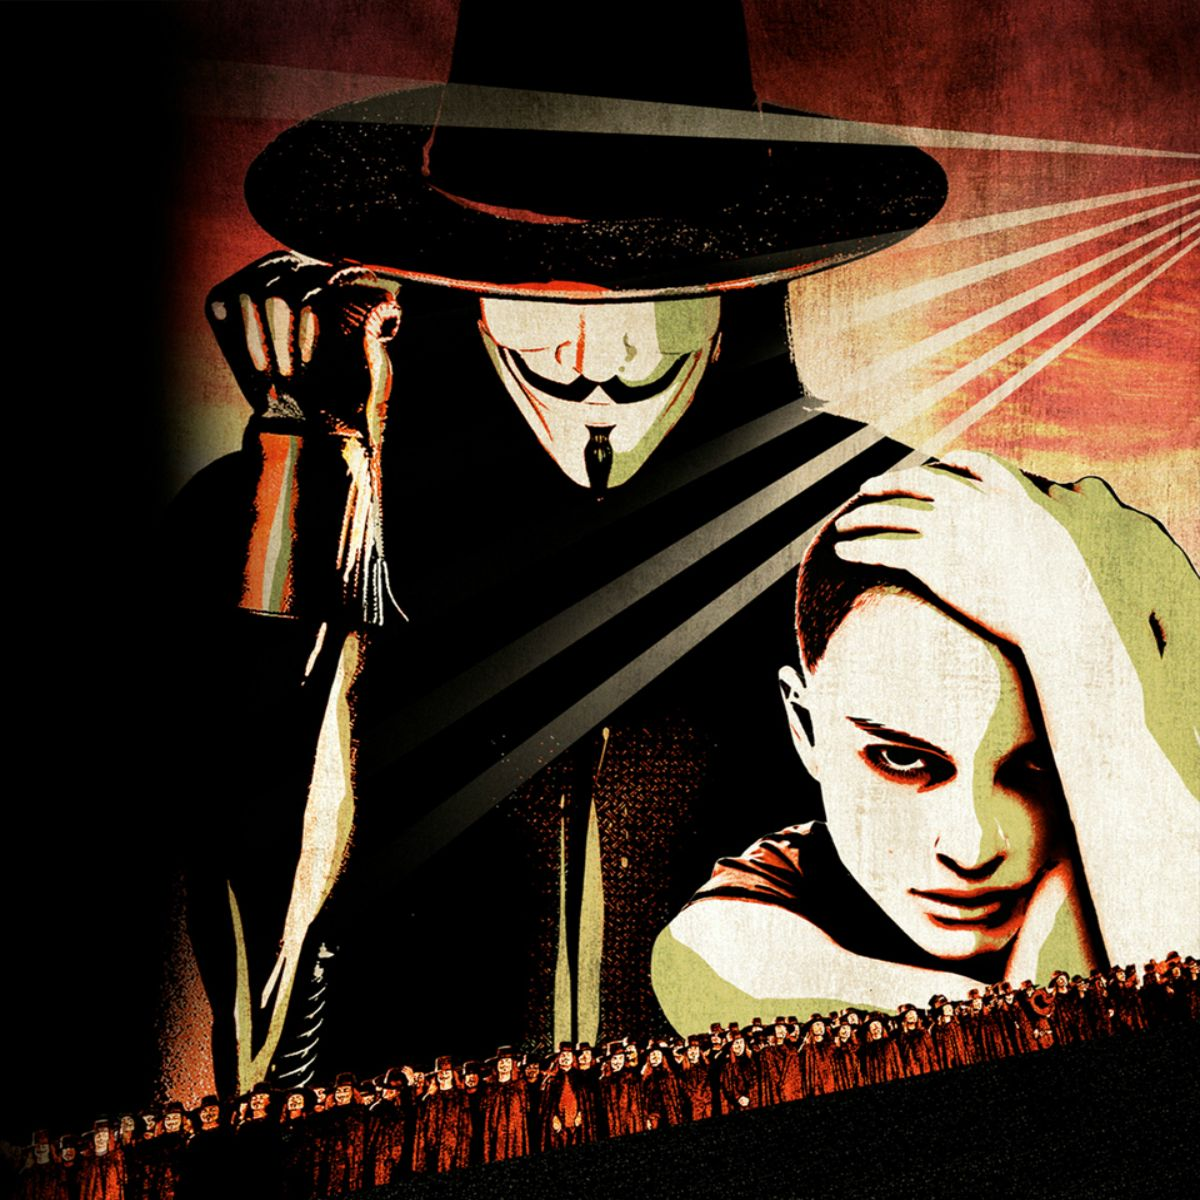 V is for V for Vendetta